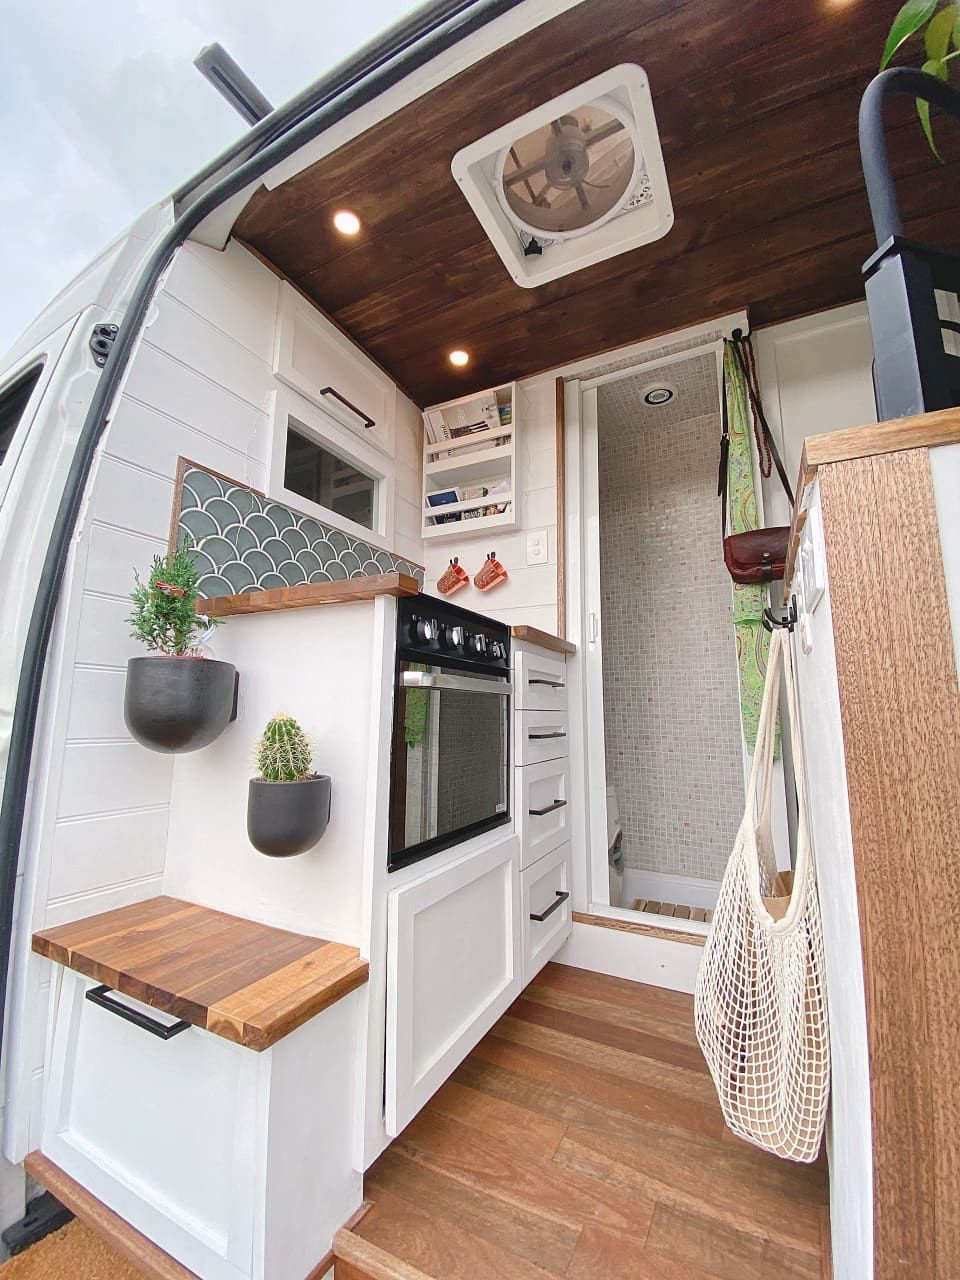 Photo of Check out this Minimal, Functional, and Nontoxic Small/Cool Space